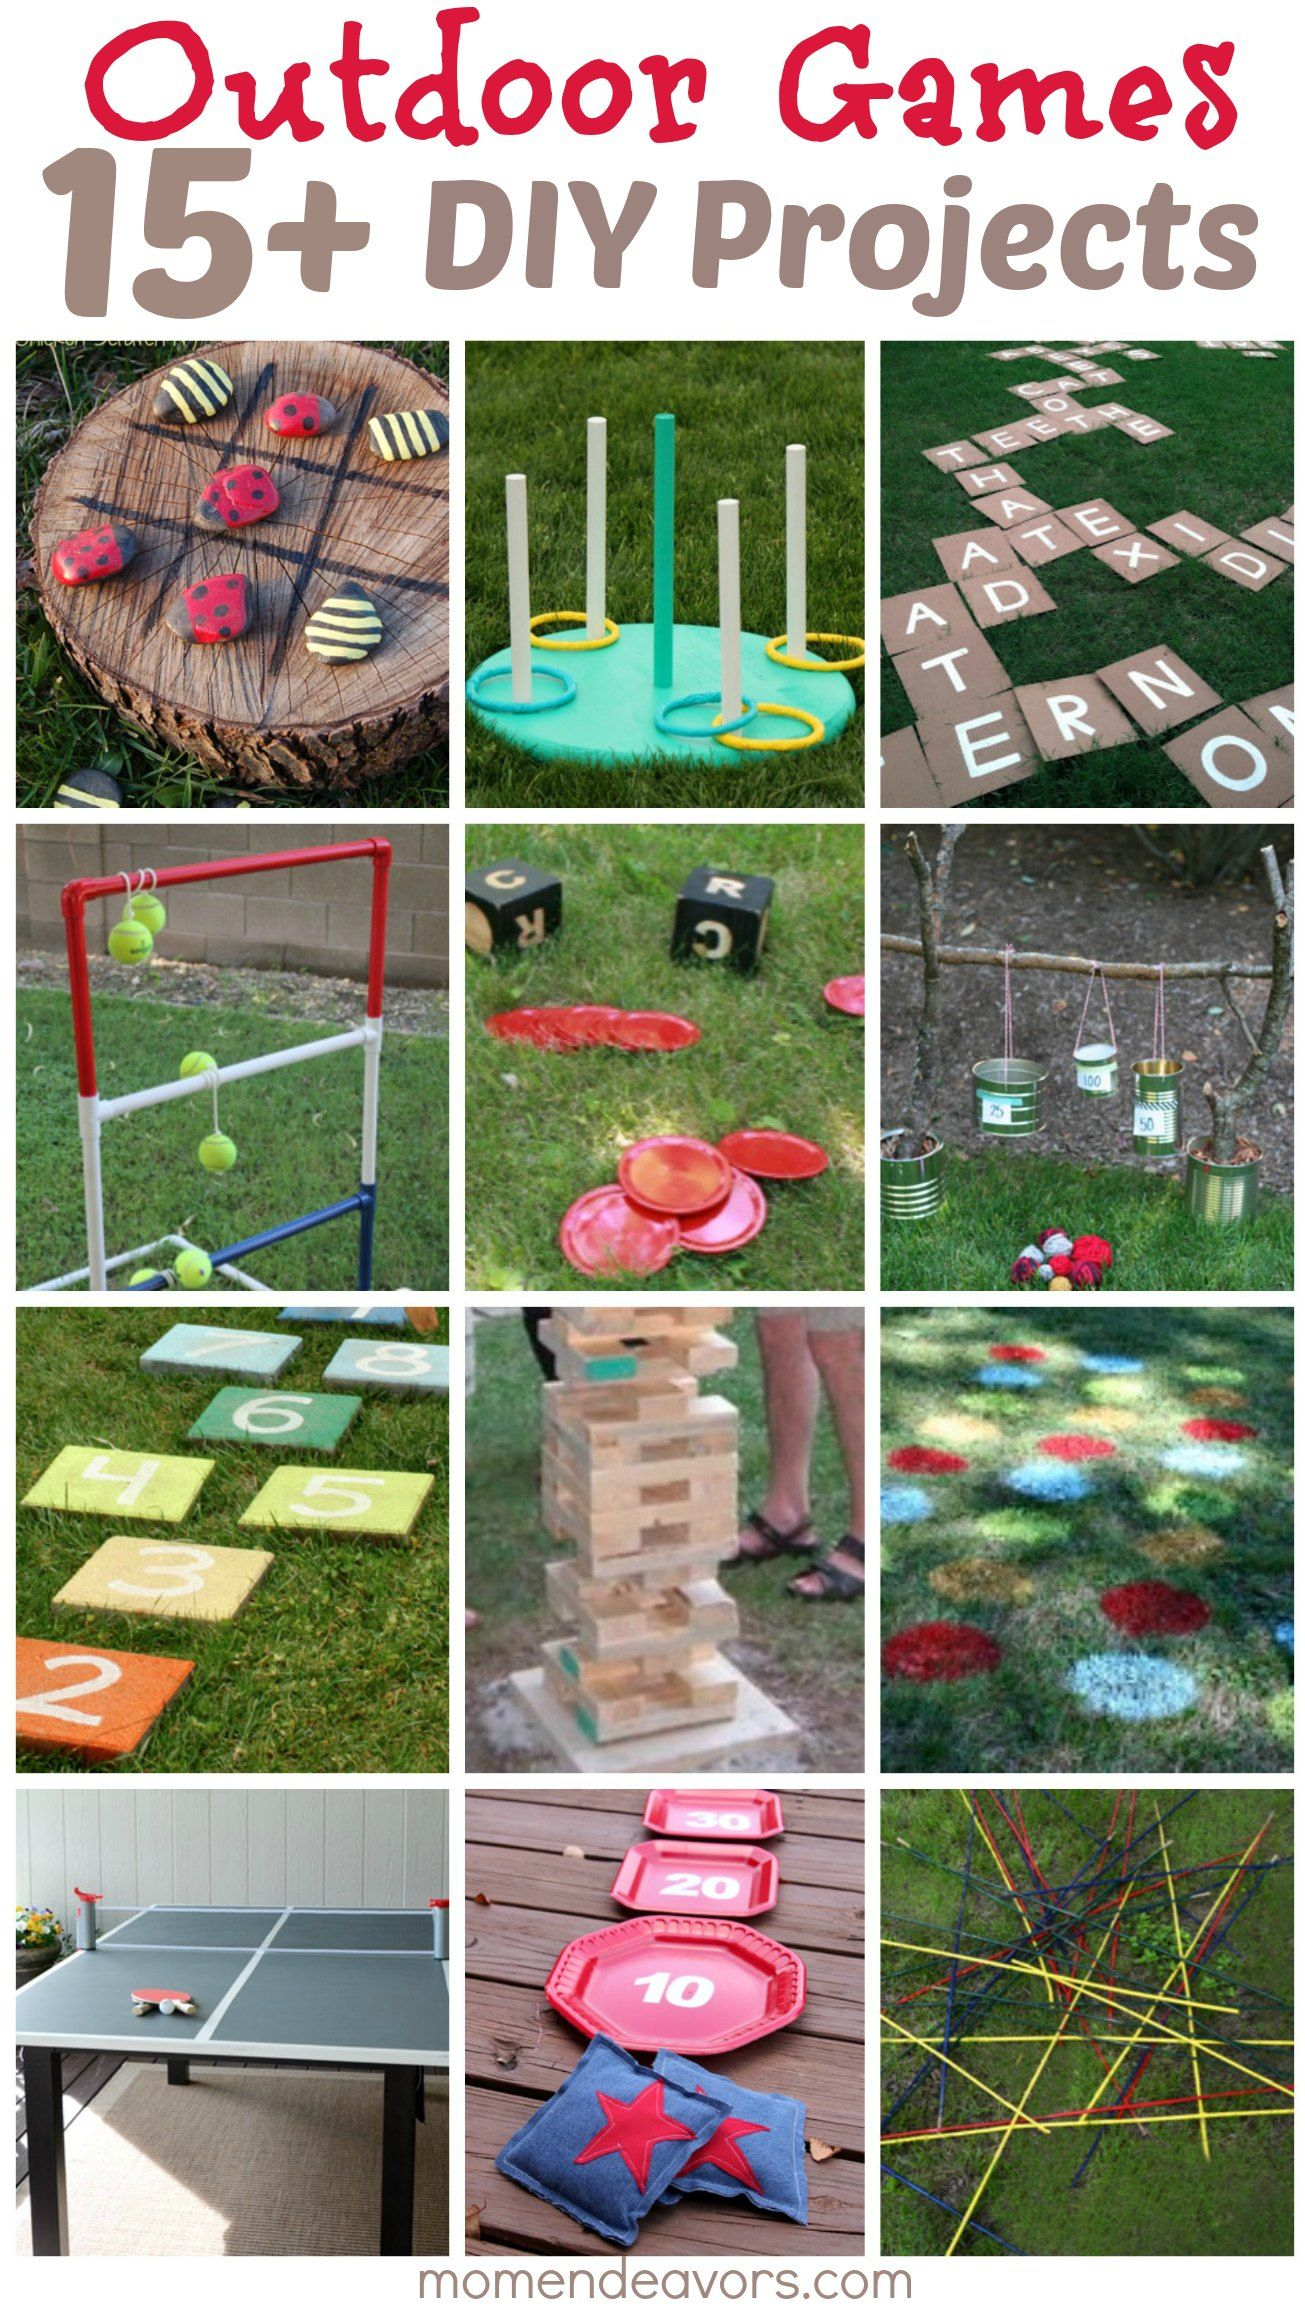 15 Diy Outdoor Games Spring Pinterest throughout 13 Some of the Coolest Concepts of How to Make Diy Backyard Party Ideas